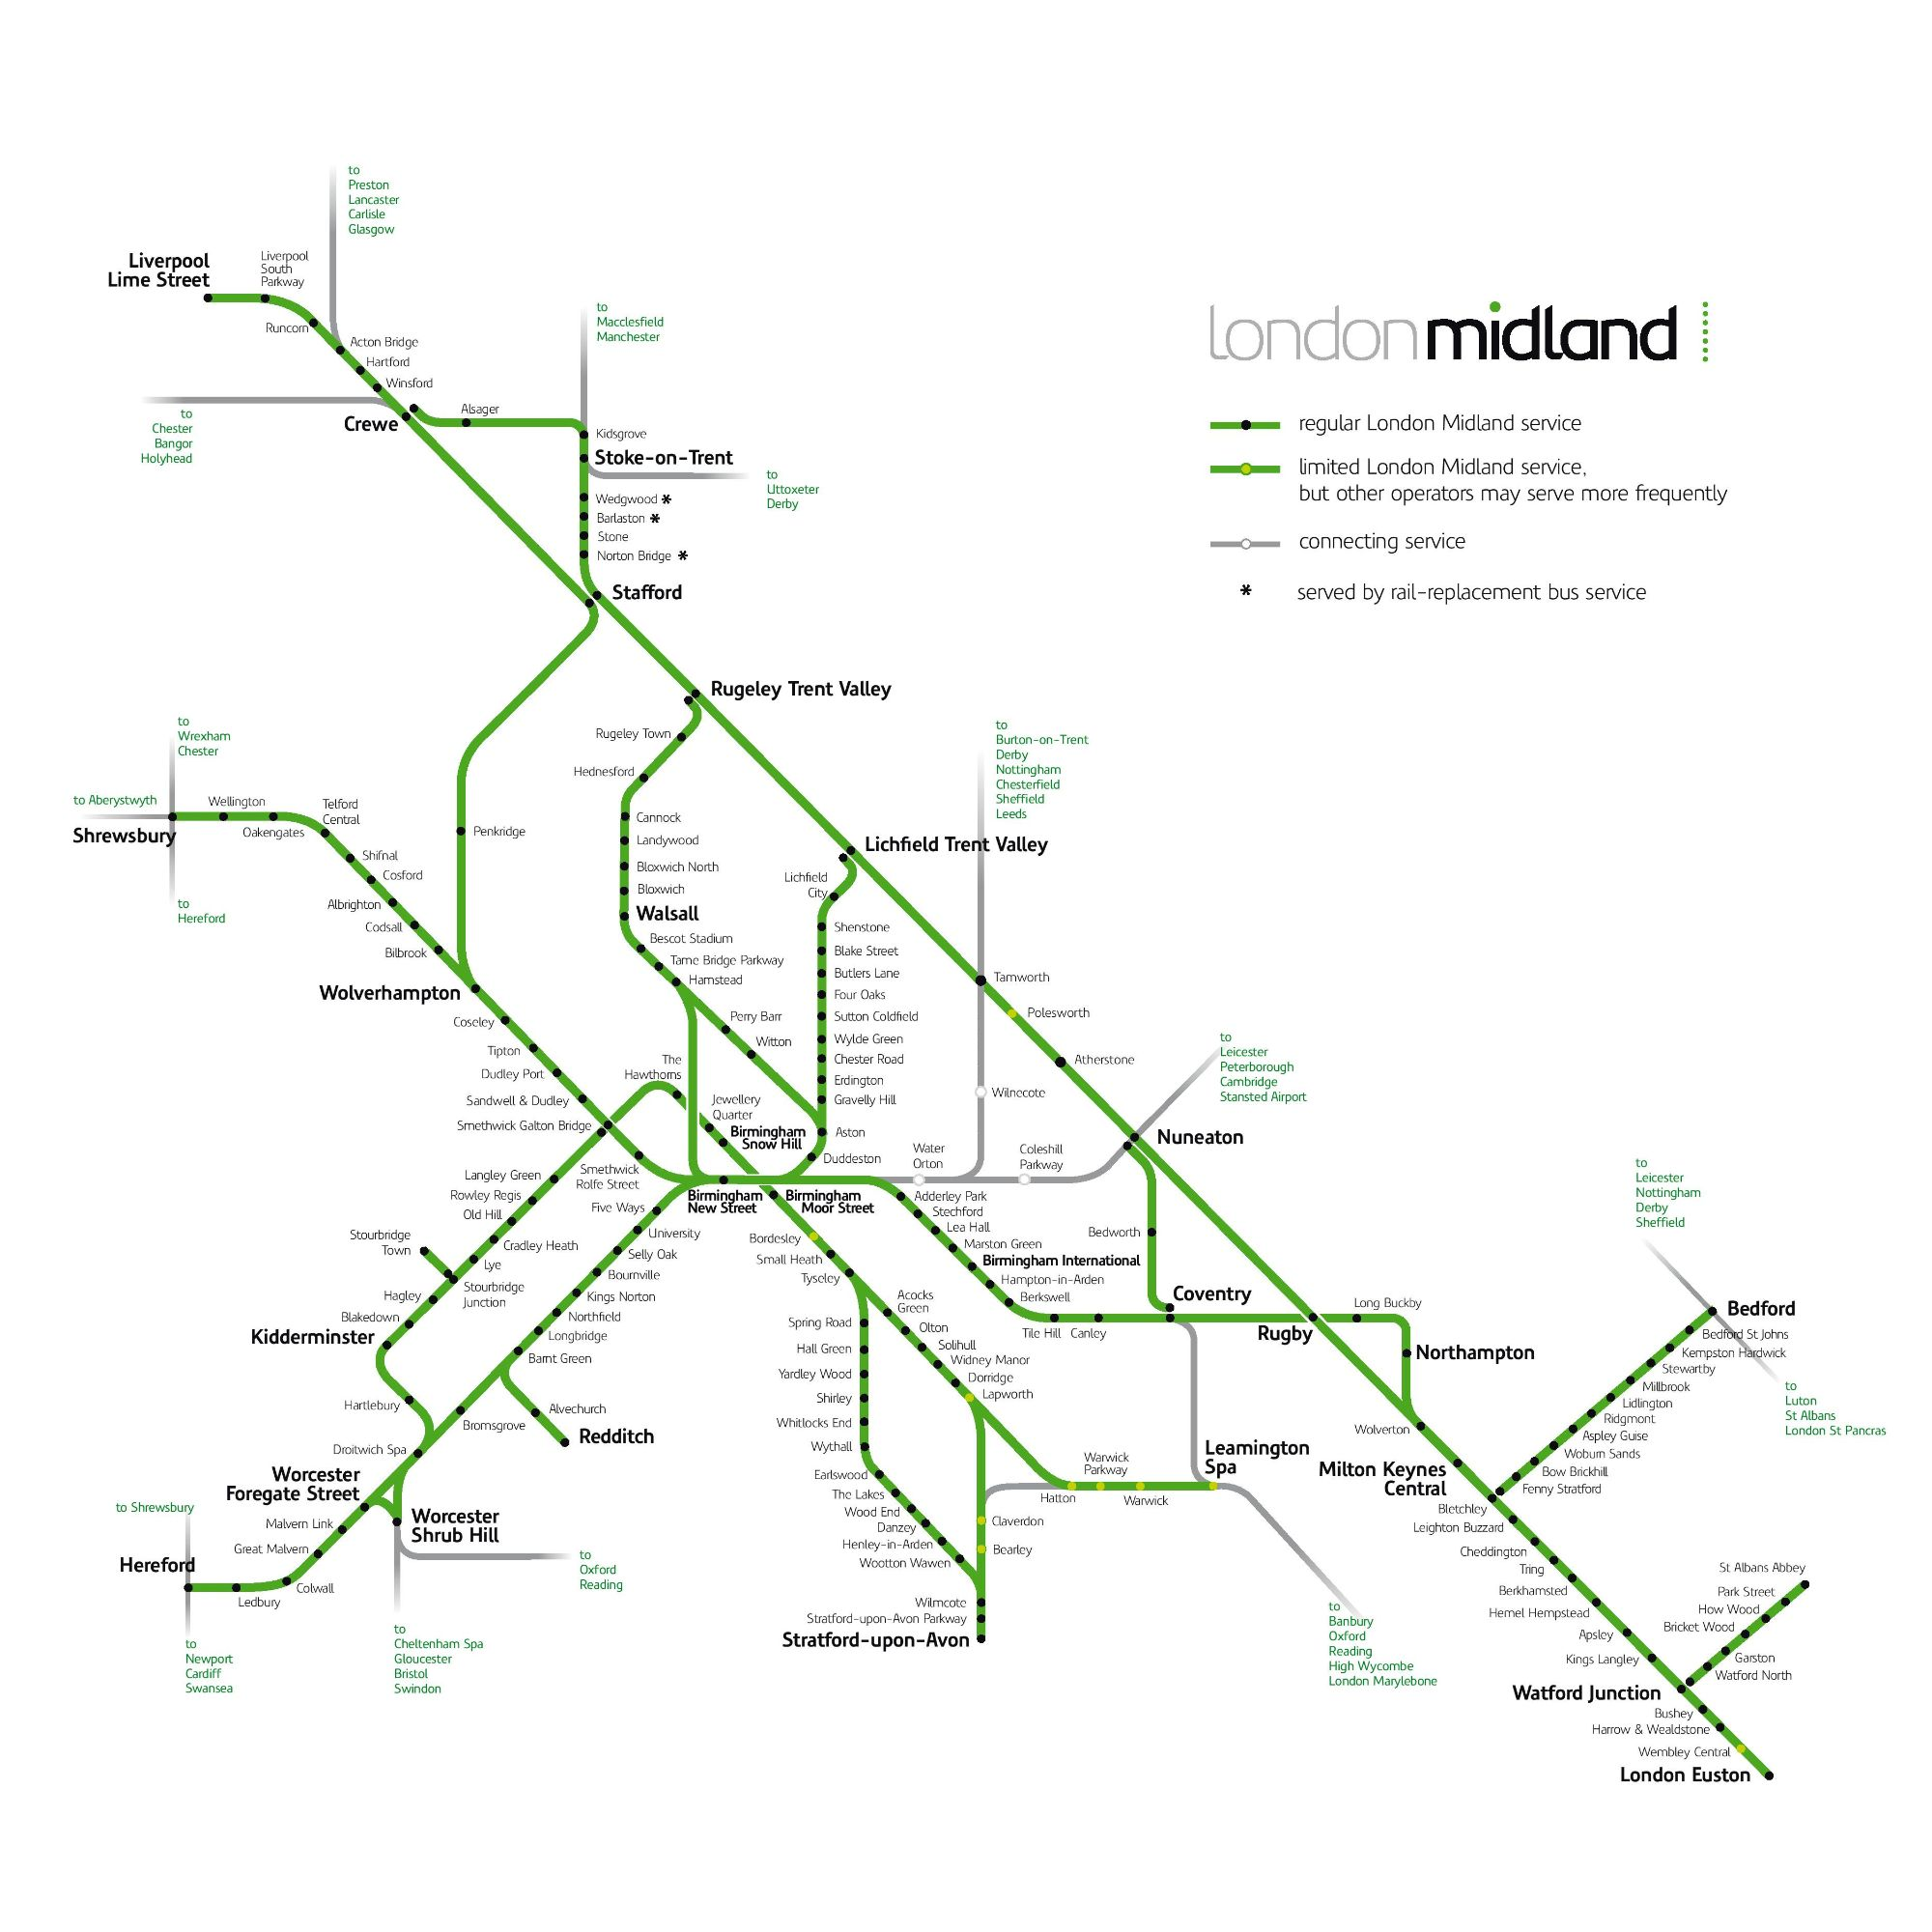 Image showing the London Midland route map circa 2015.